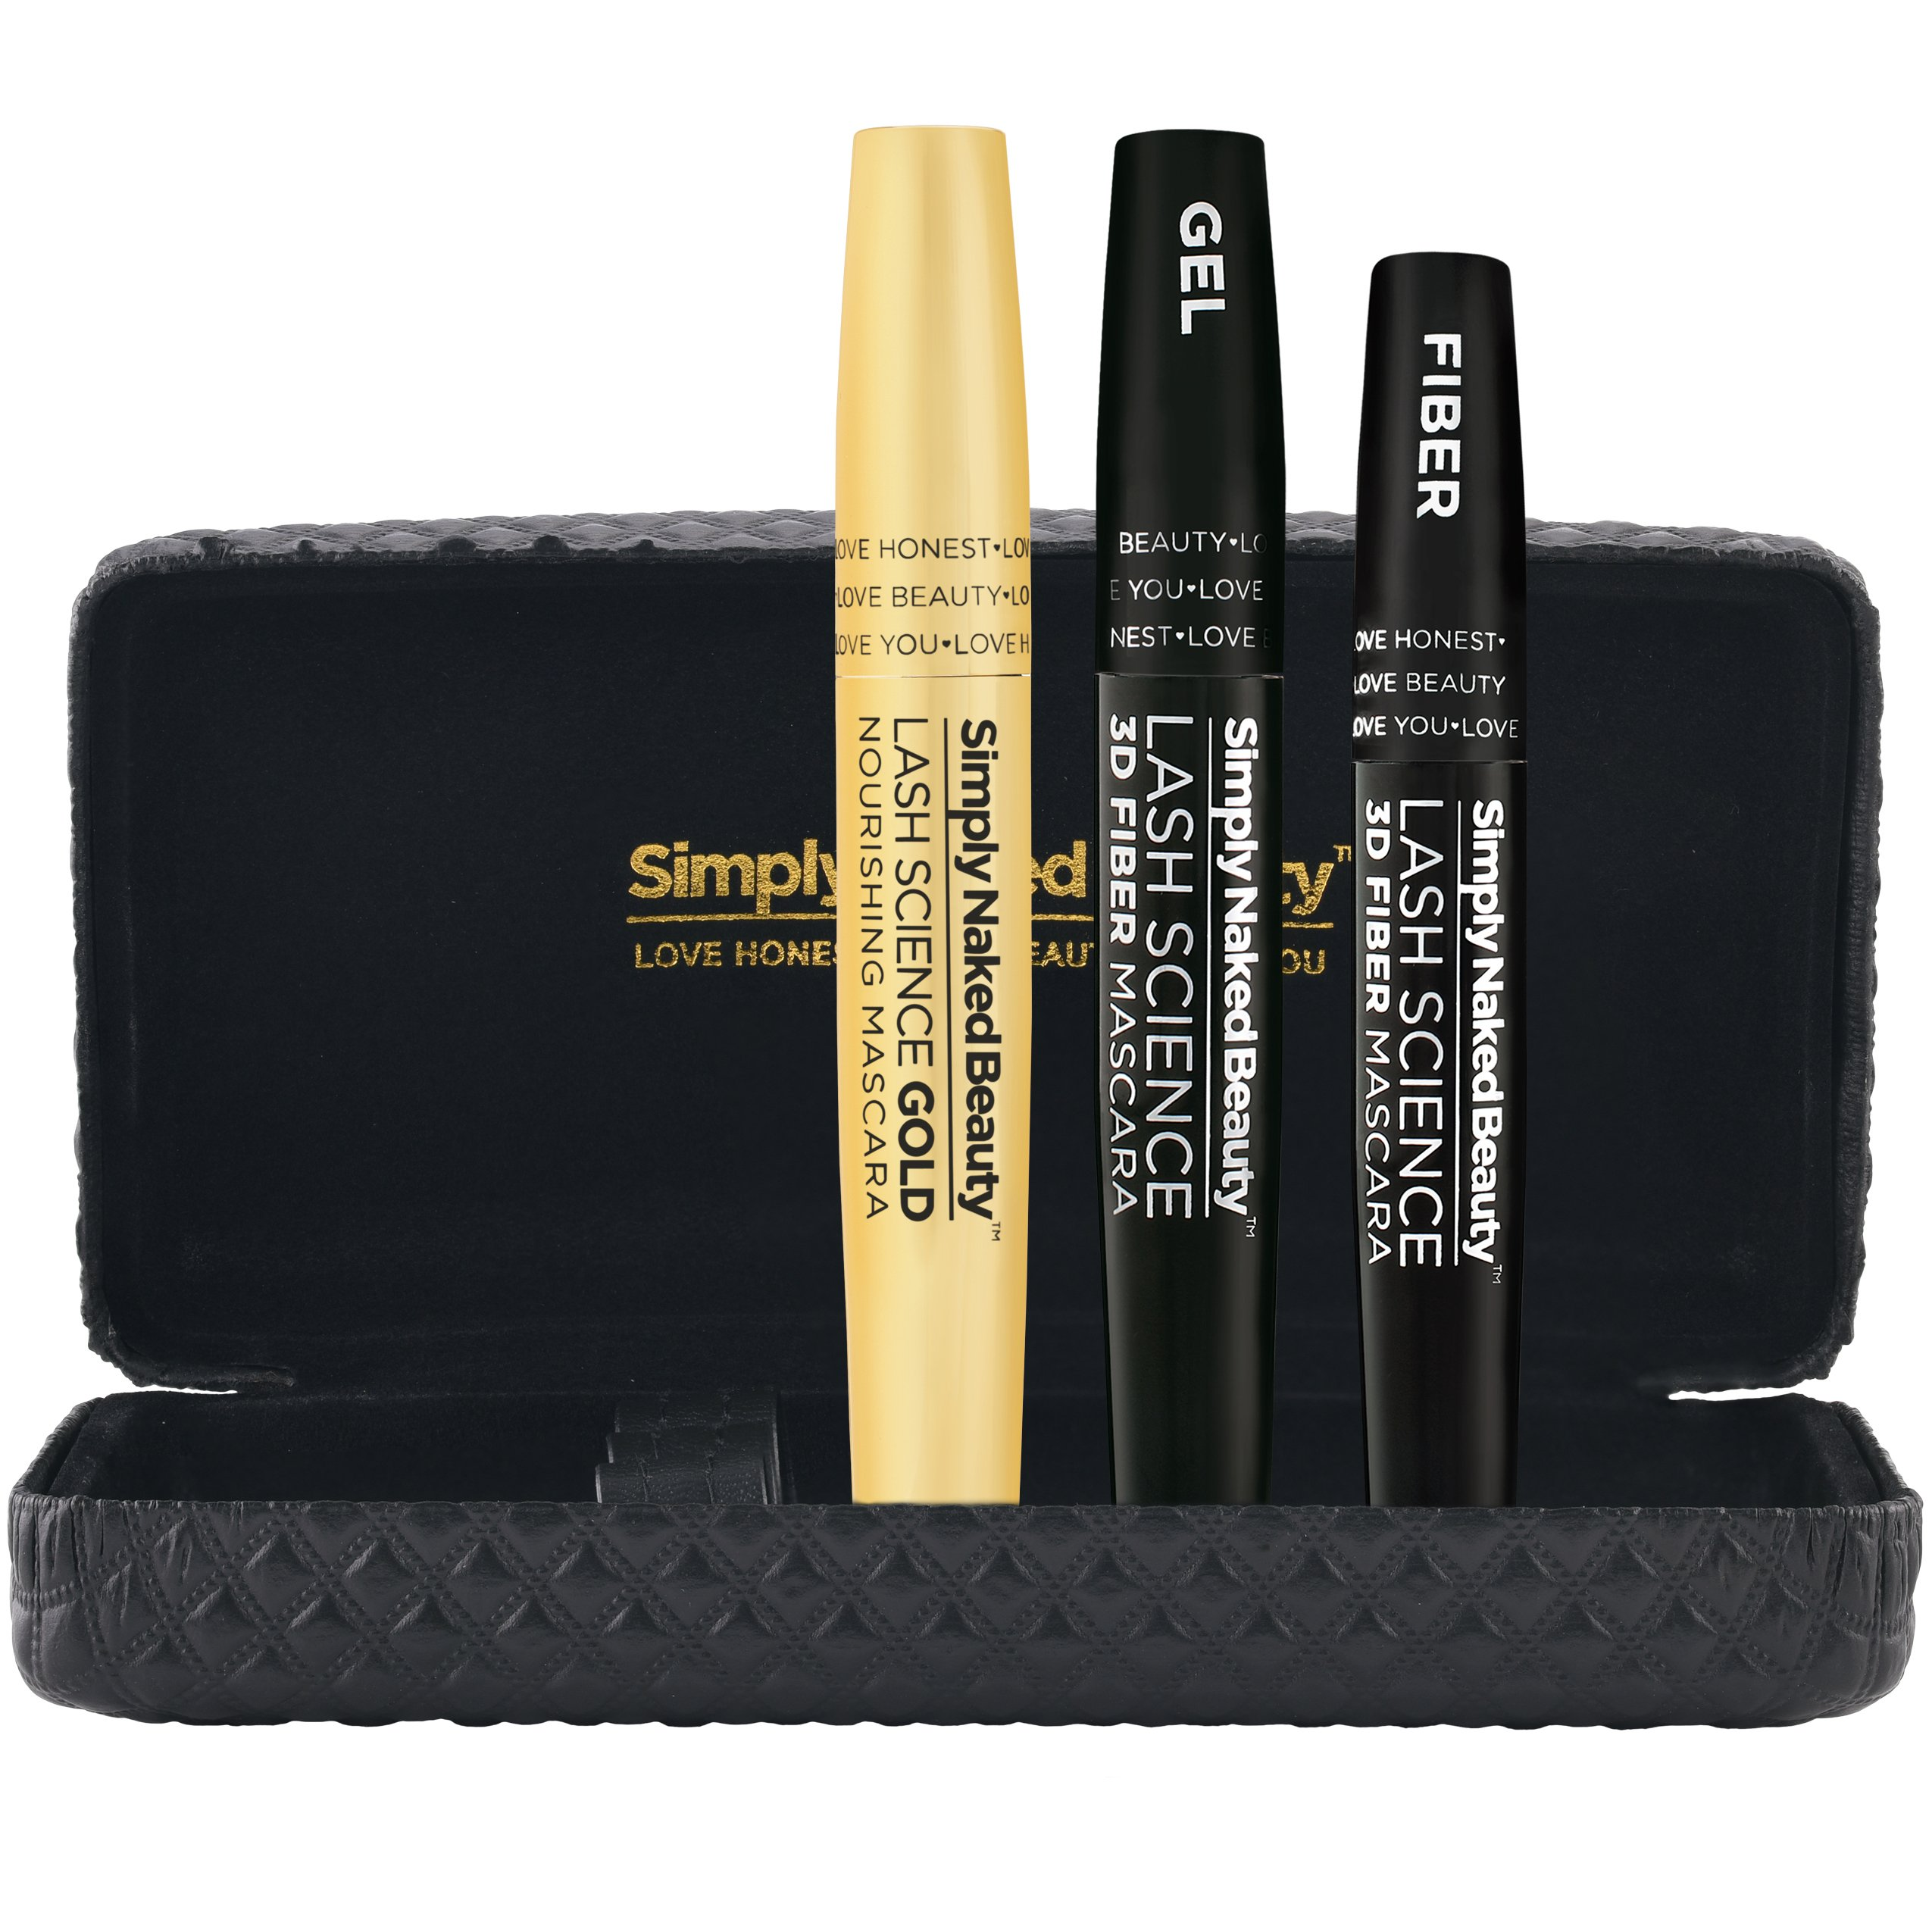 3D Fiber Lash Mascara with Eyelash Enhancing Serum by Simply Naked Beauty. Infused with Organic